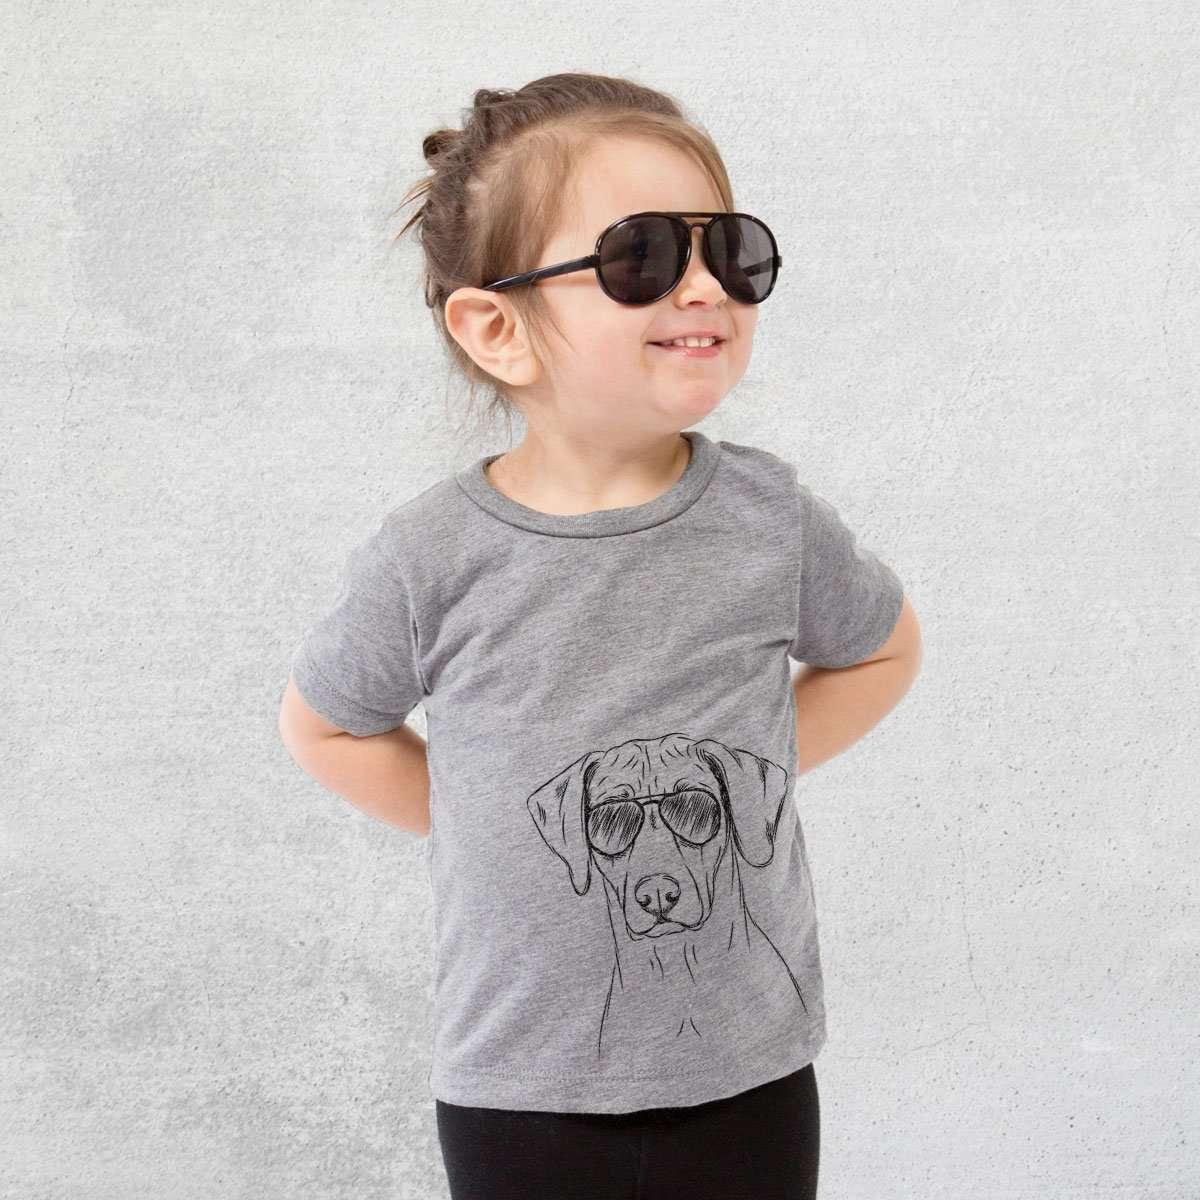 Ronan the Rhodesian Ridgeback - Kids/Youth/Toddler Shirt